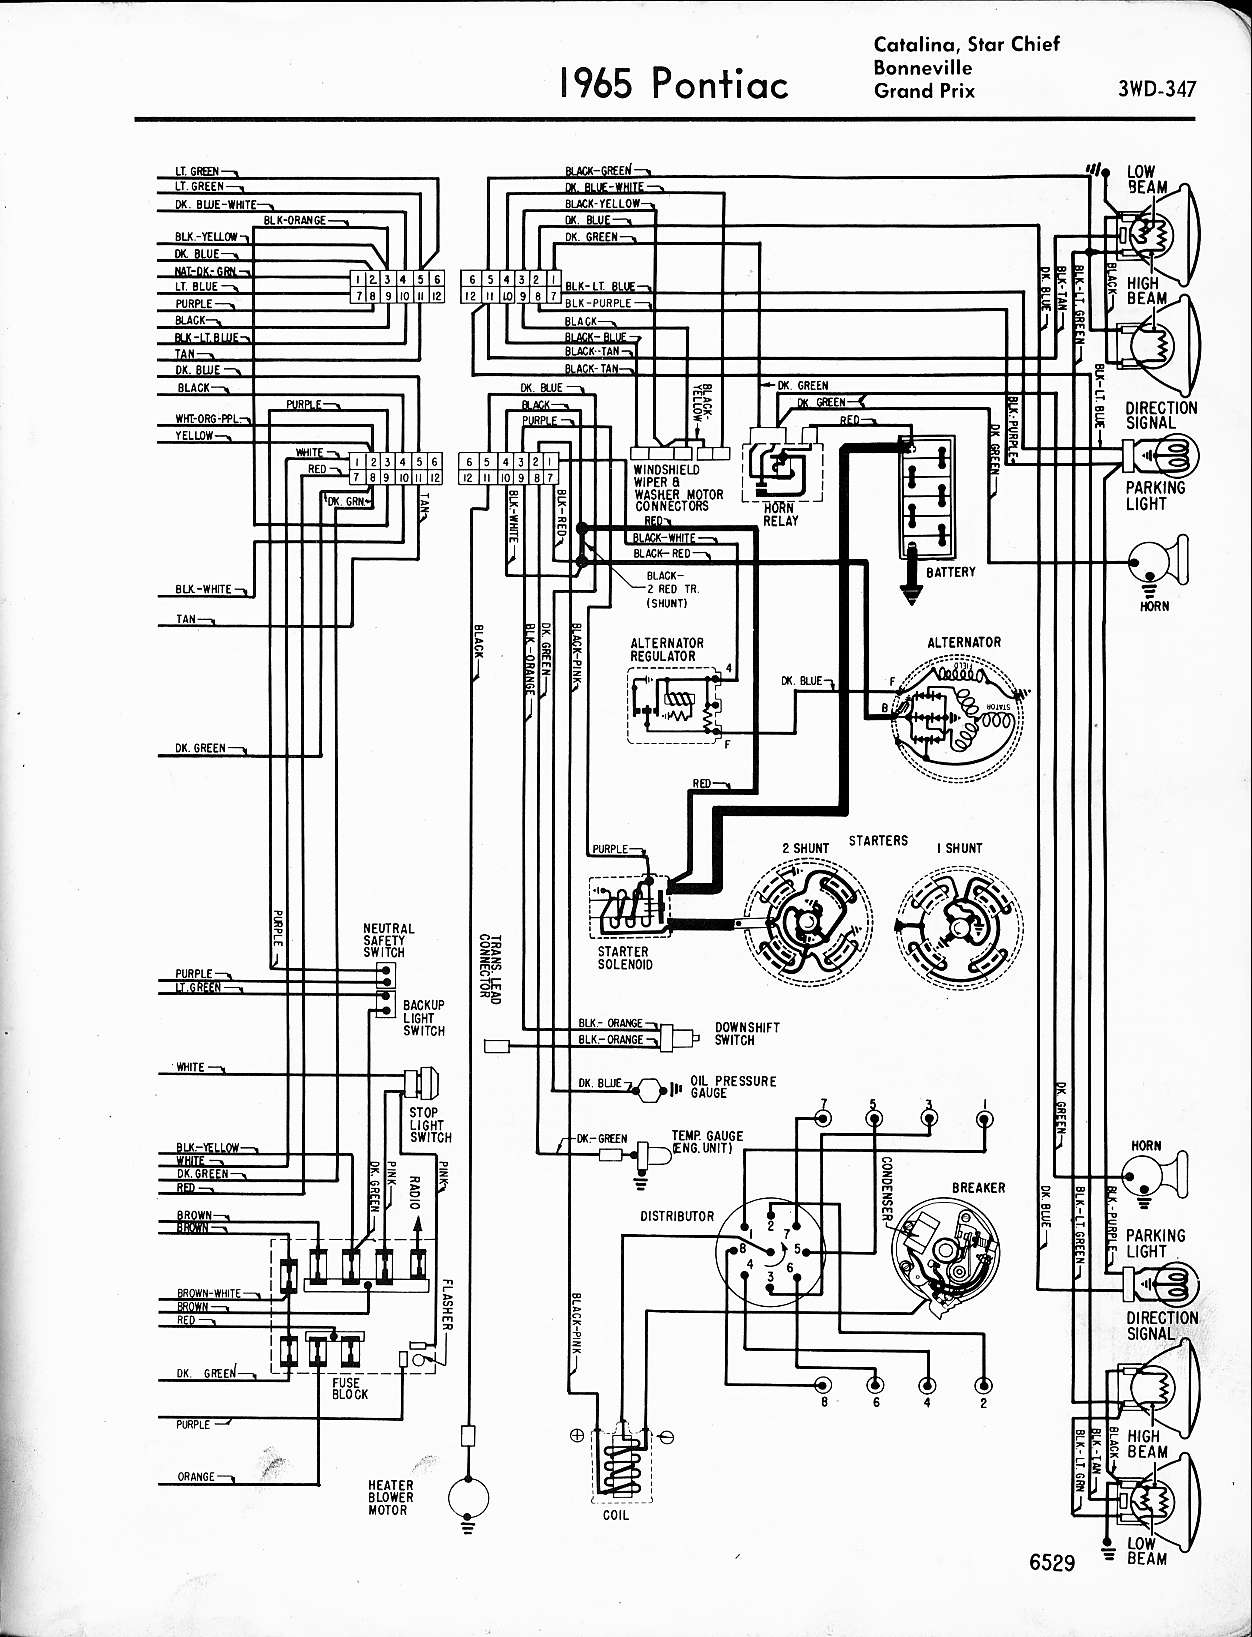 wiring diagram for 67 pontiac lemans wiring diagram data today1967 gto fuse box wiring diagram owner manual \u0026 wiring diagram wiring diagram for 67 pontiac lemans